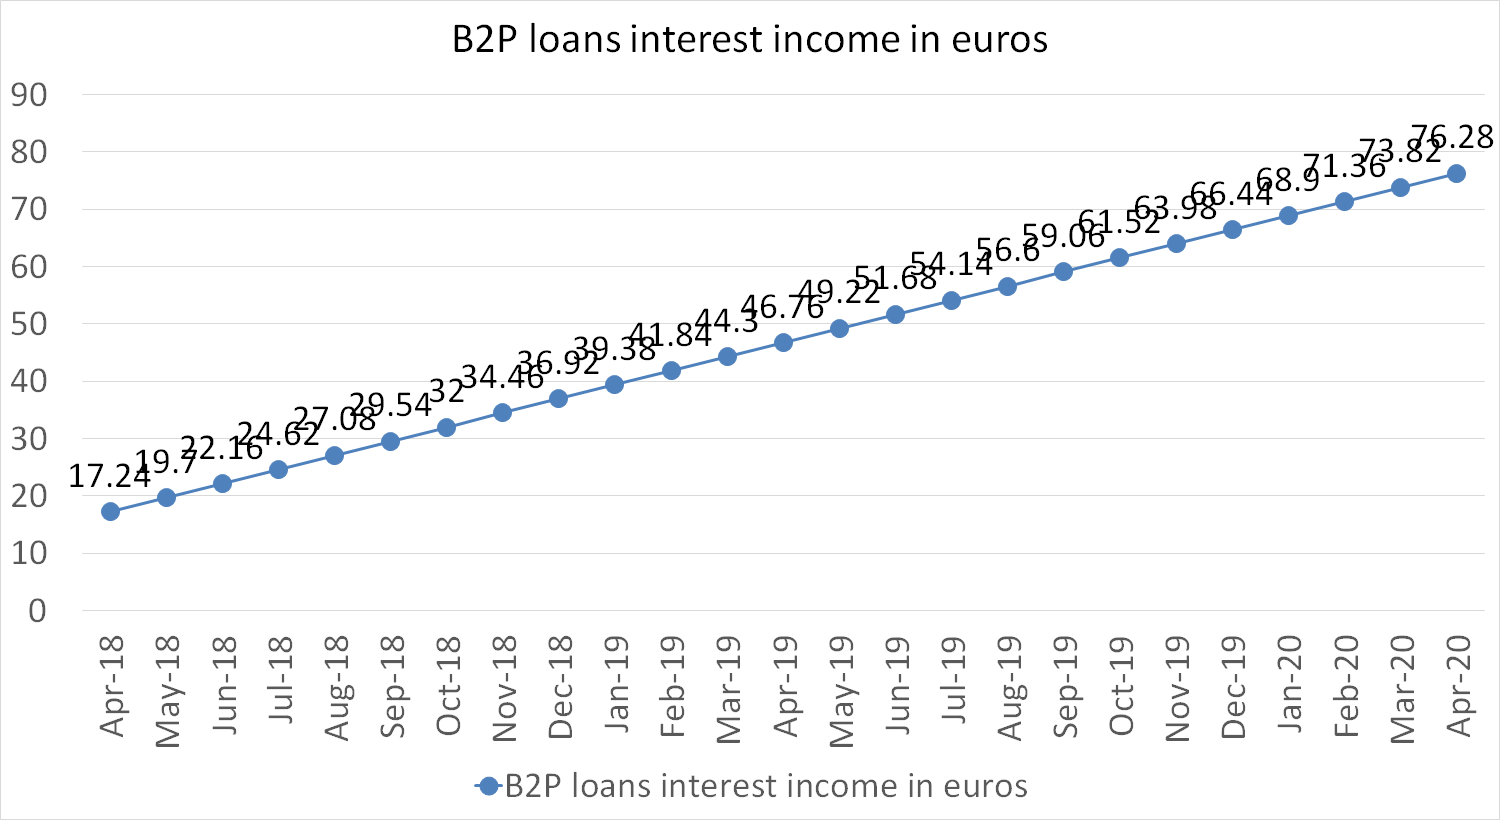 B2P loans interest income in euros april 2020